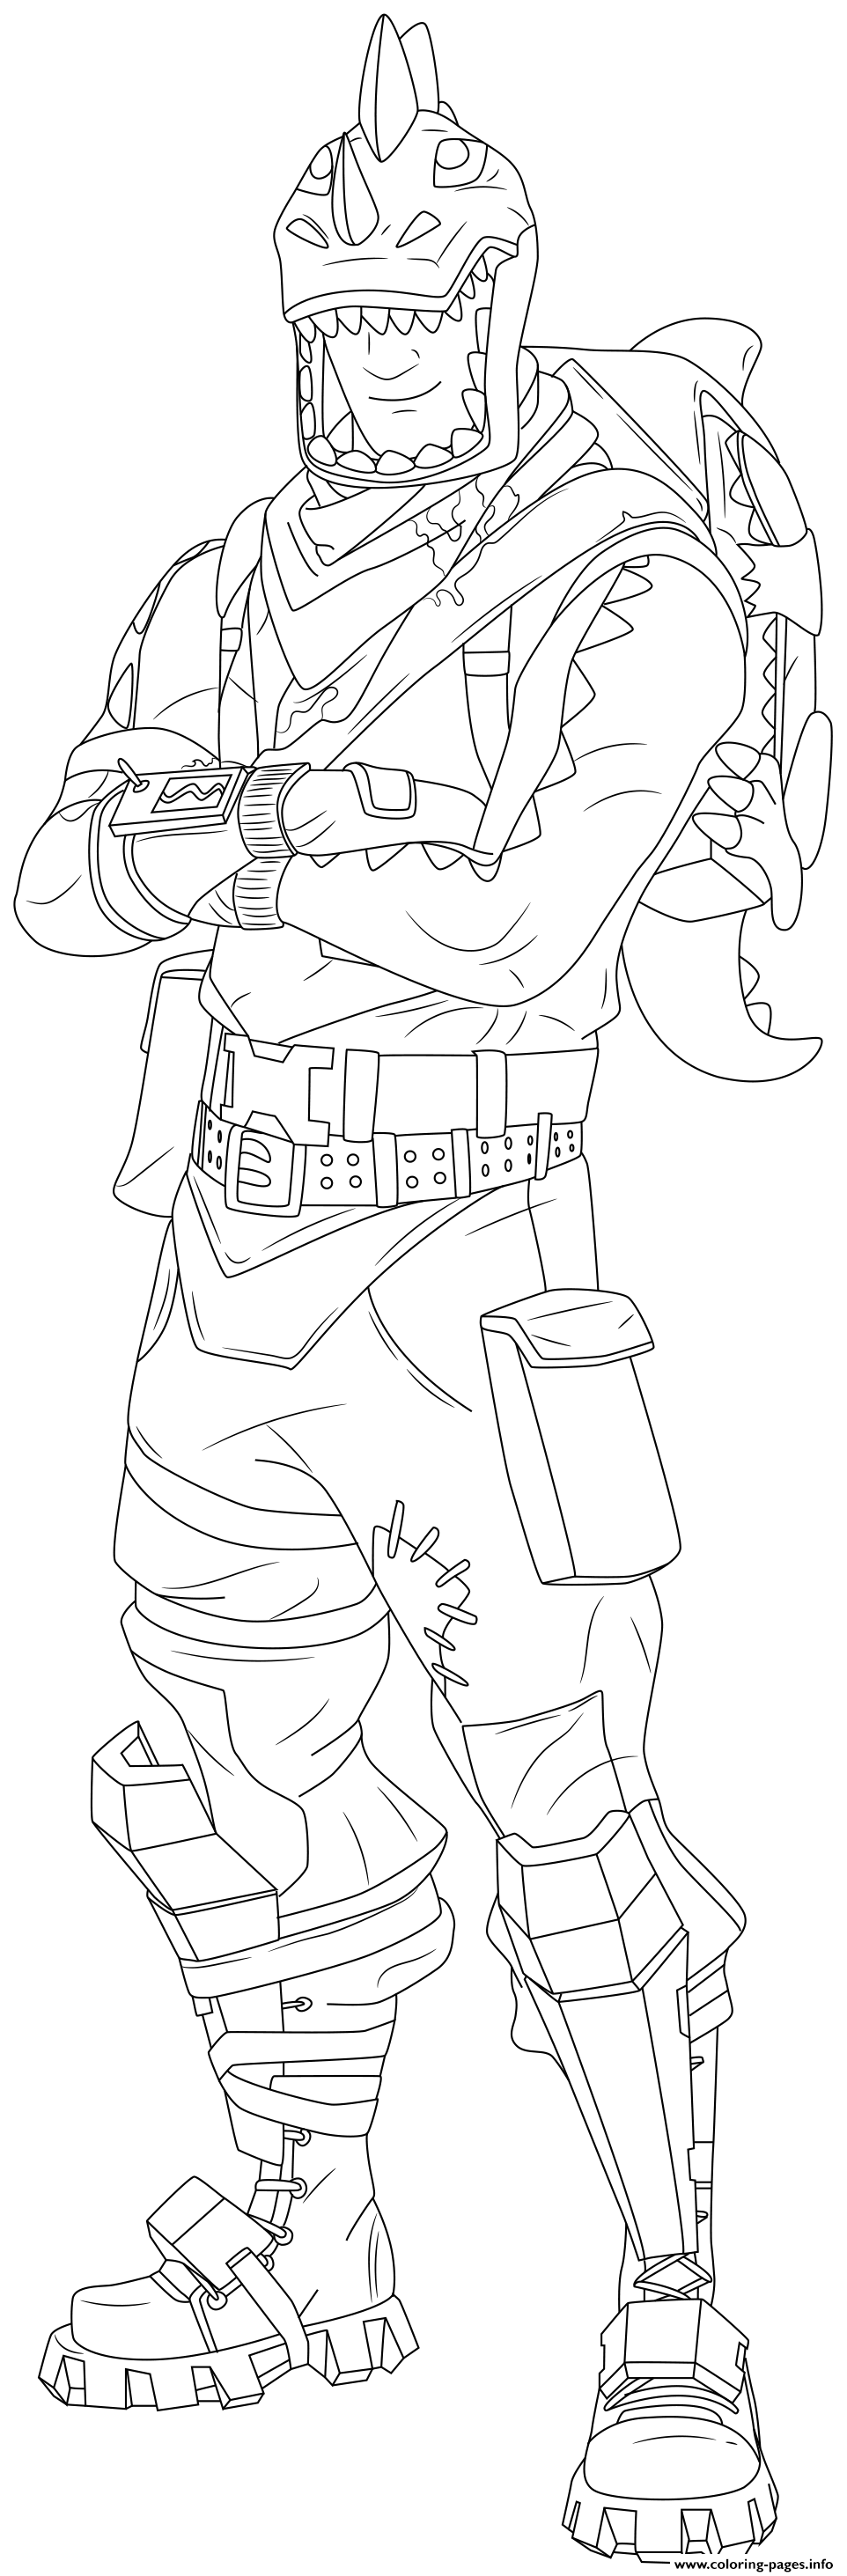 Rex Fortnite Skin Hd coloring pages